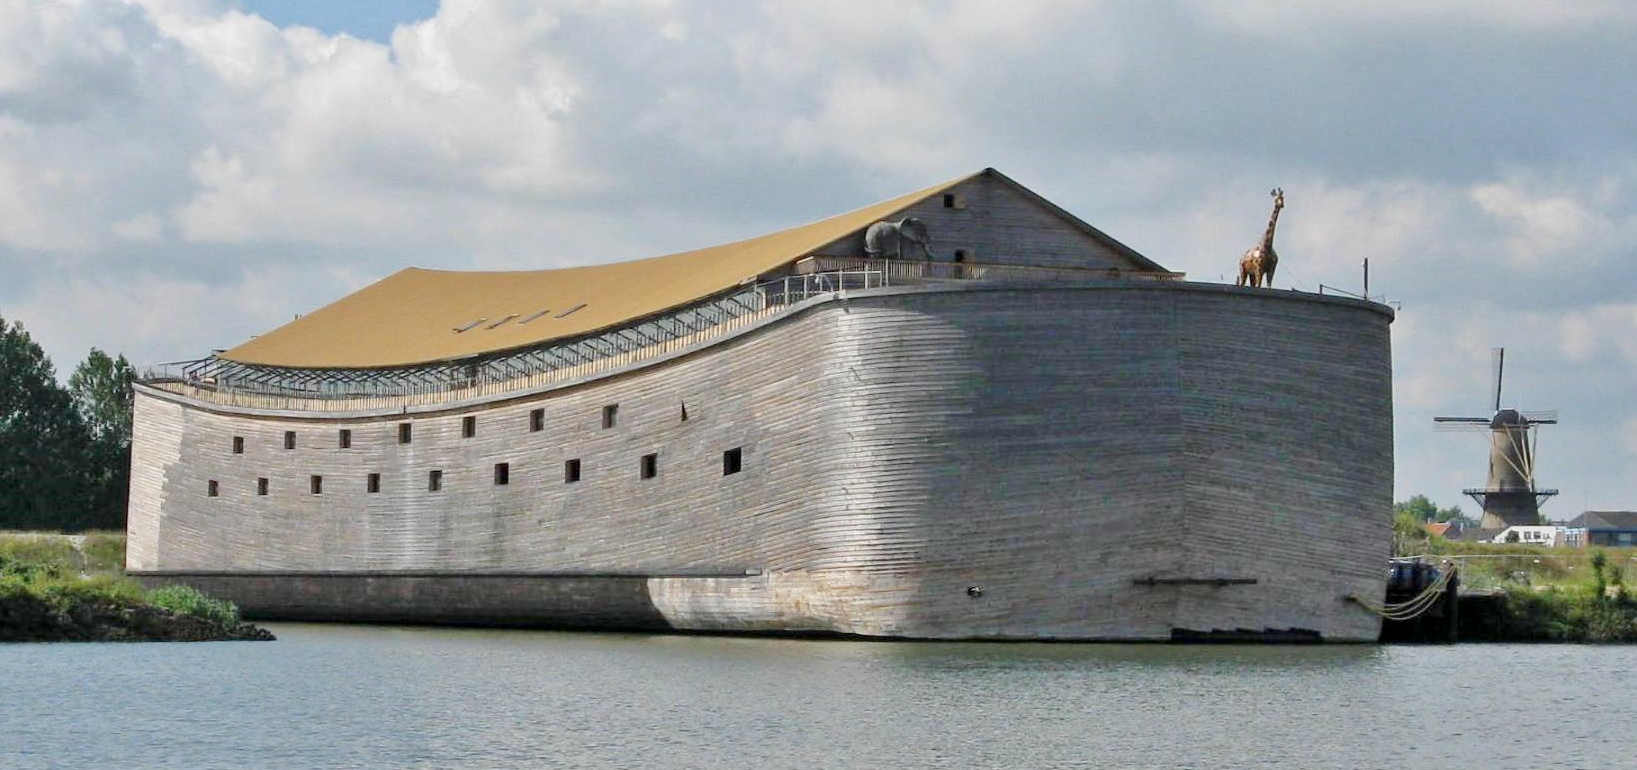 Full Scale Replica of Noah's Ark in Dordrecht, Netherlands